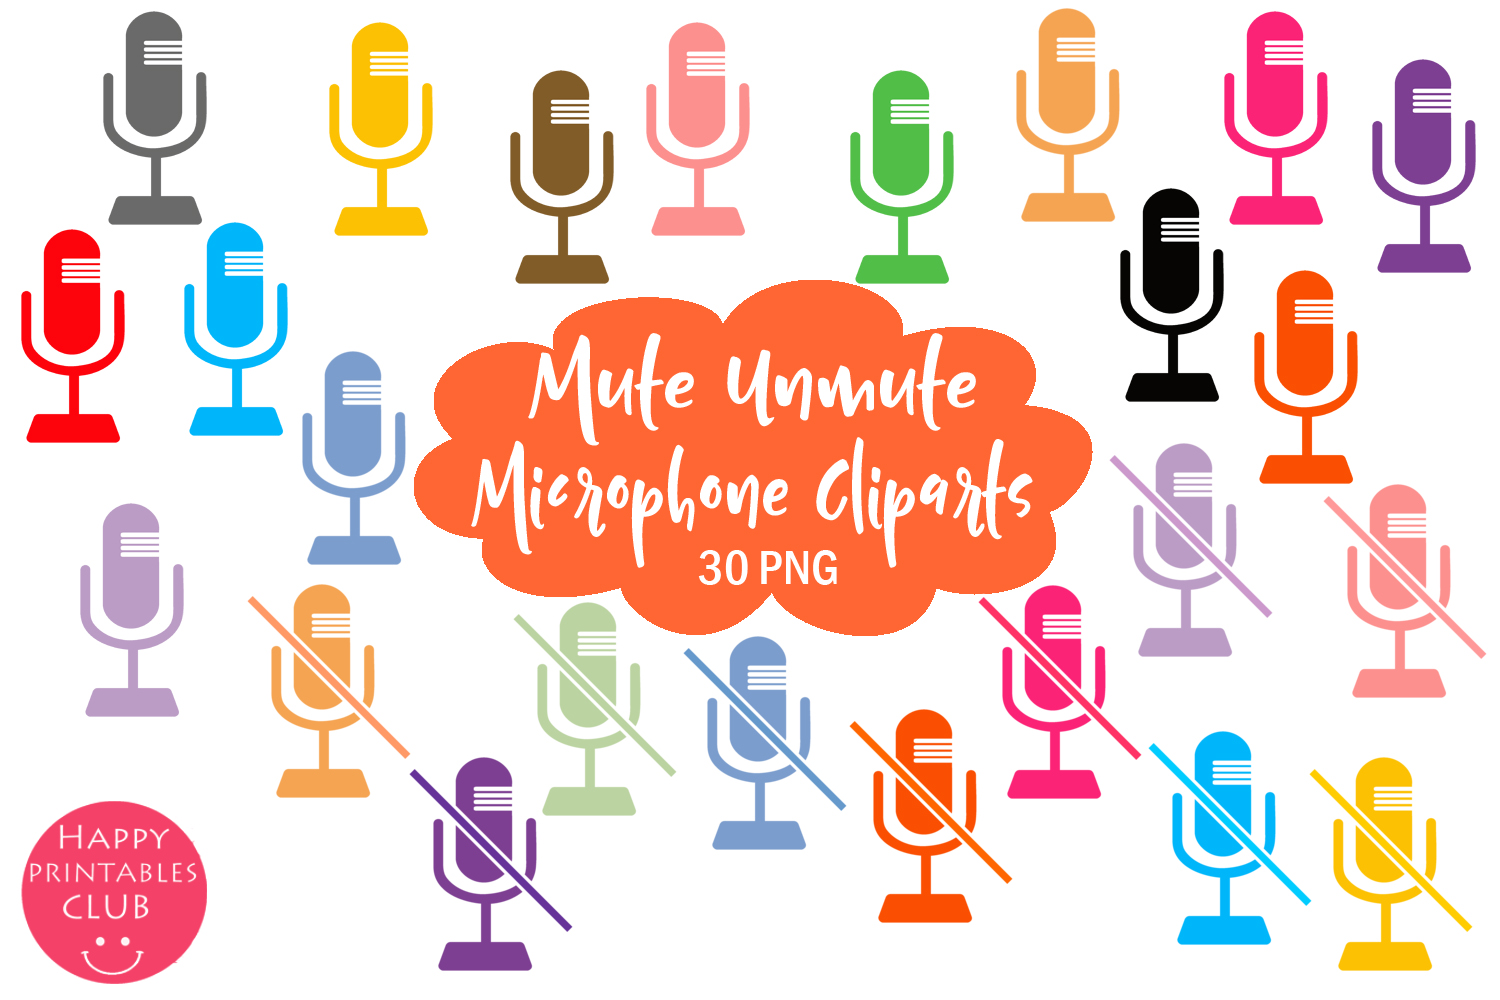 Download Free Mute Unmute Microphone Clipart Set Graphic By Happy Printables Club Creative Fabrica for Cricut Explore, Silhouette and other cutting machines.